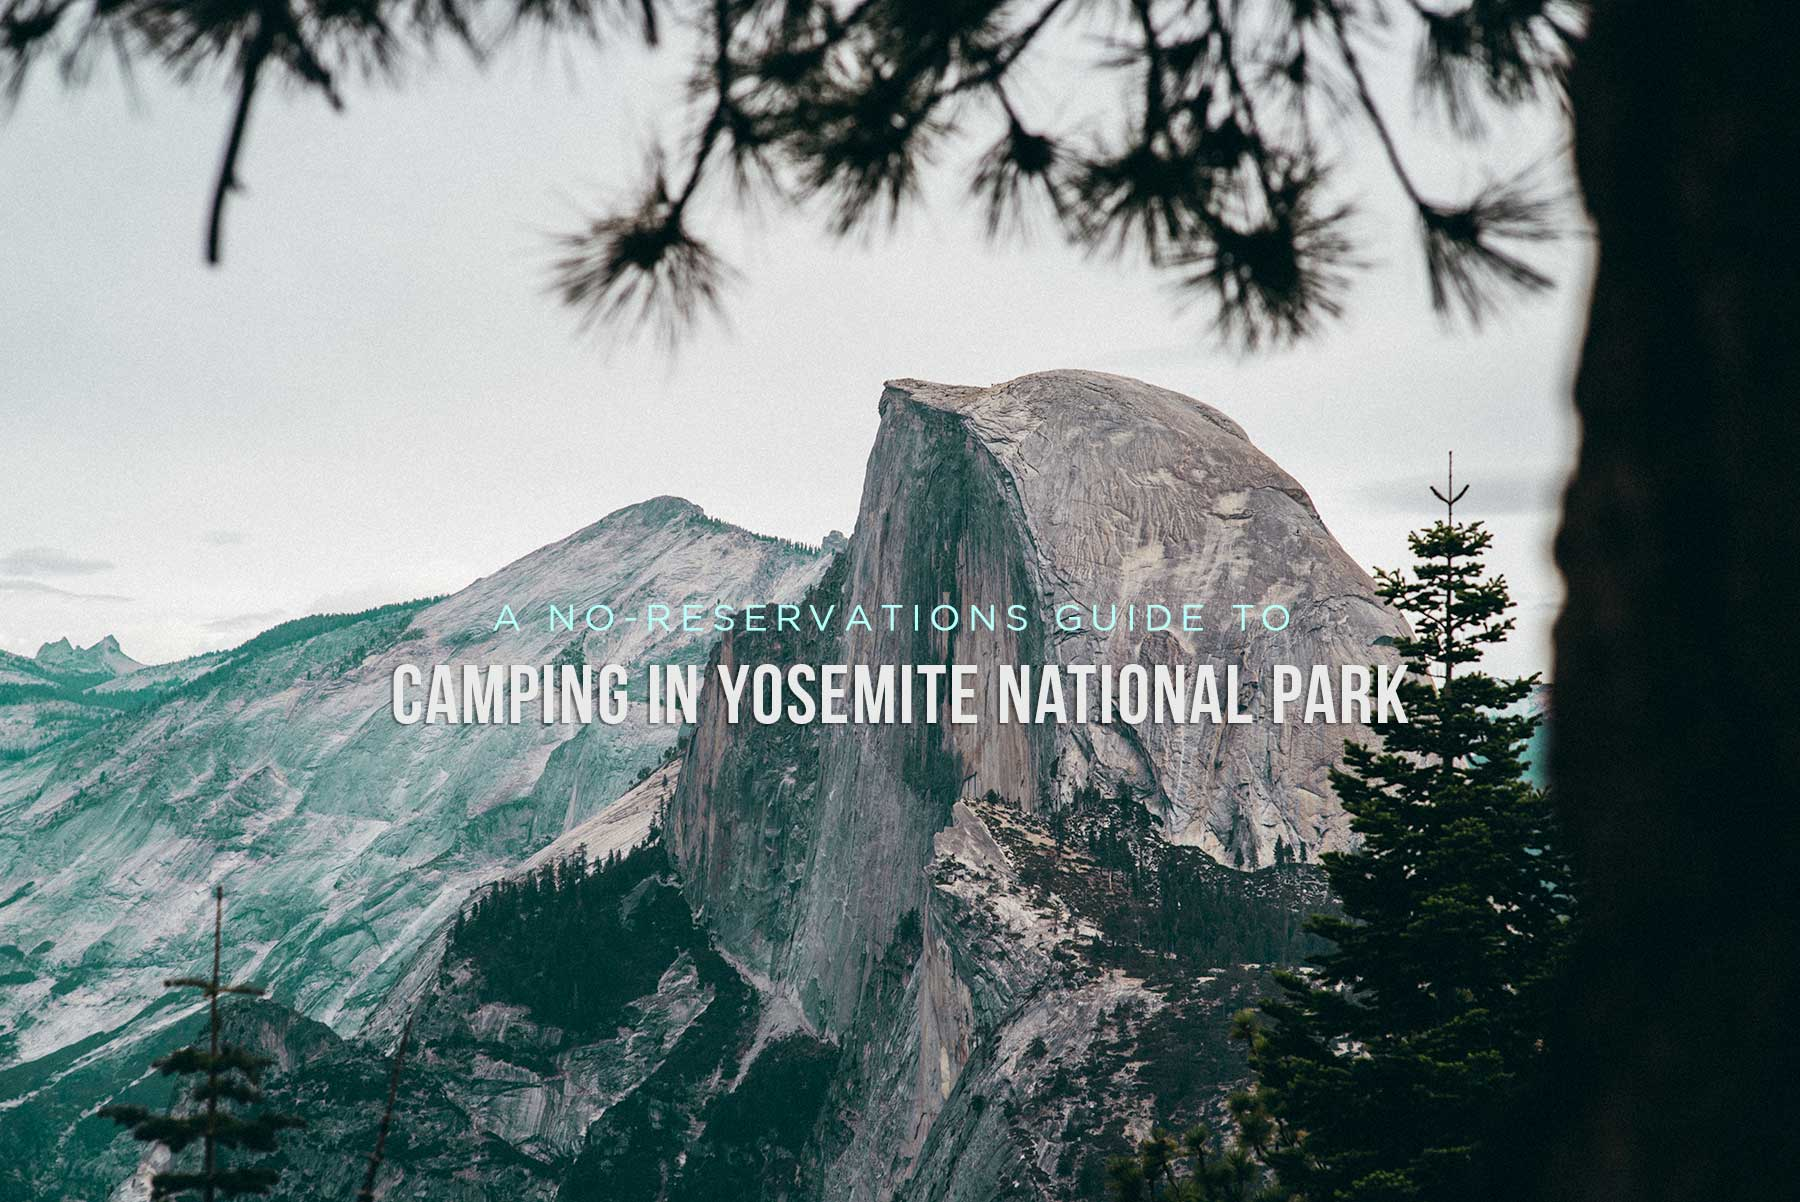 A No Reservations Guide to Camping in Yosemite National Park 1800x1202